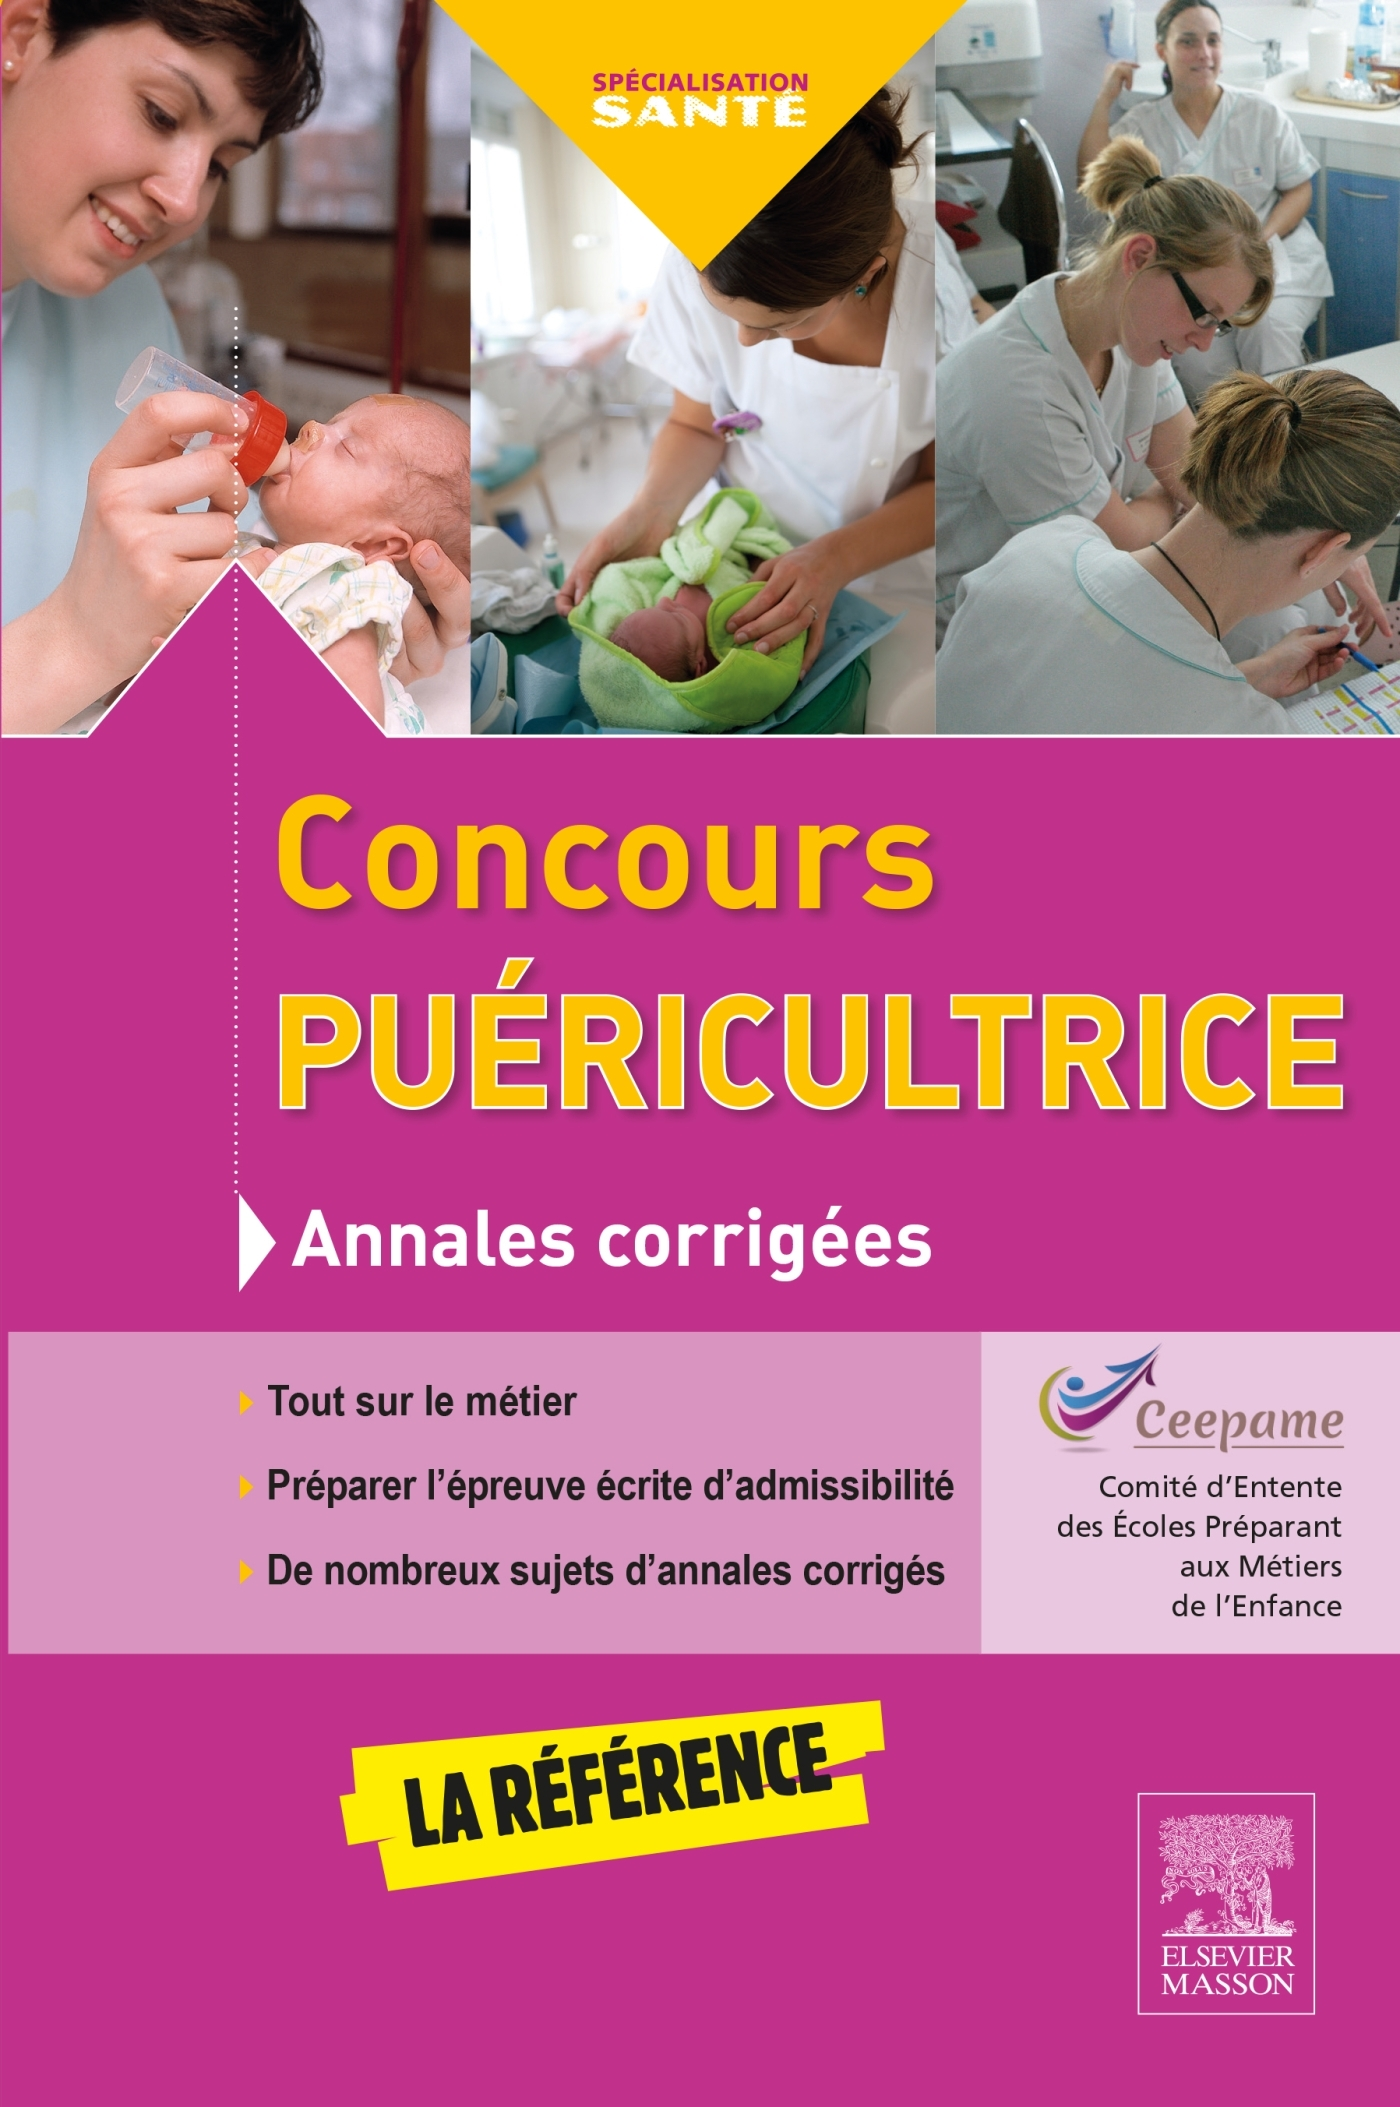 CONCOURS PUERICULTRICE - ANNALES CORRIGEES